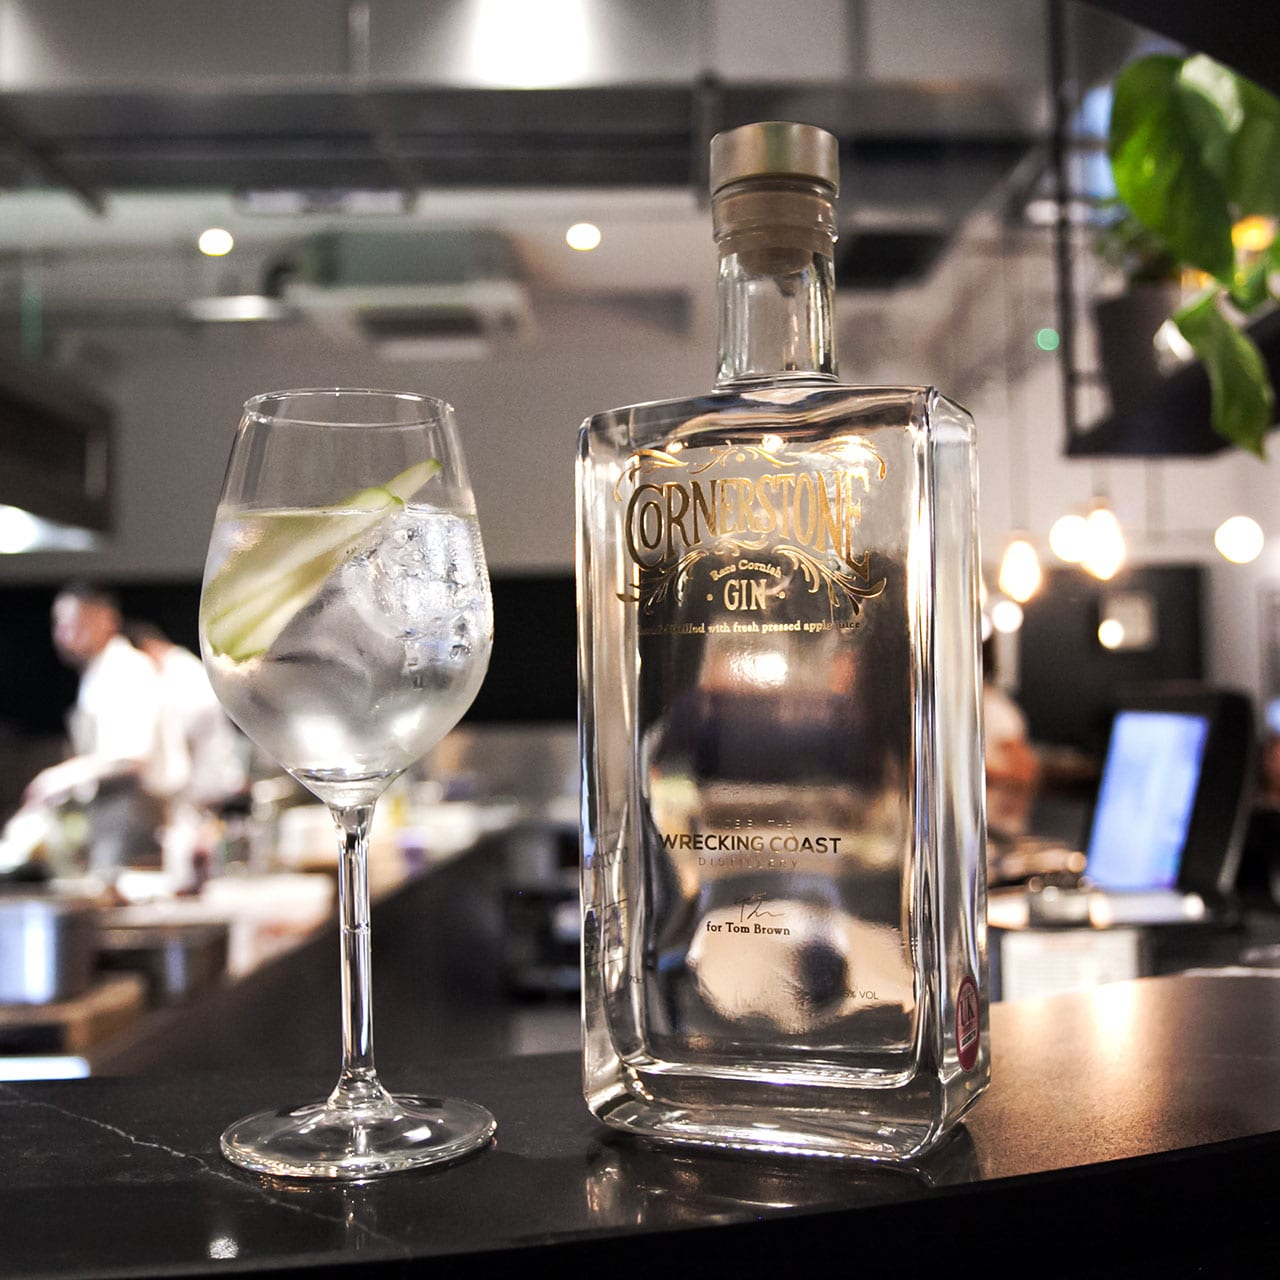 A photograph of the Cornerstone gin bottle with a gin glass on the bar-top at Tom Brown's restaurant Cornerstone Hackney Wick in London